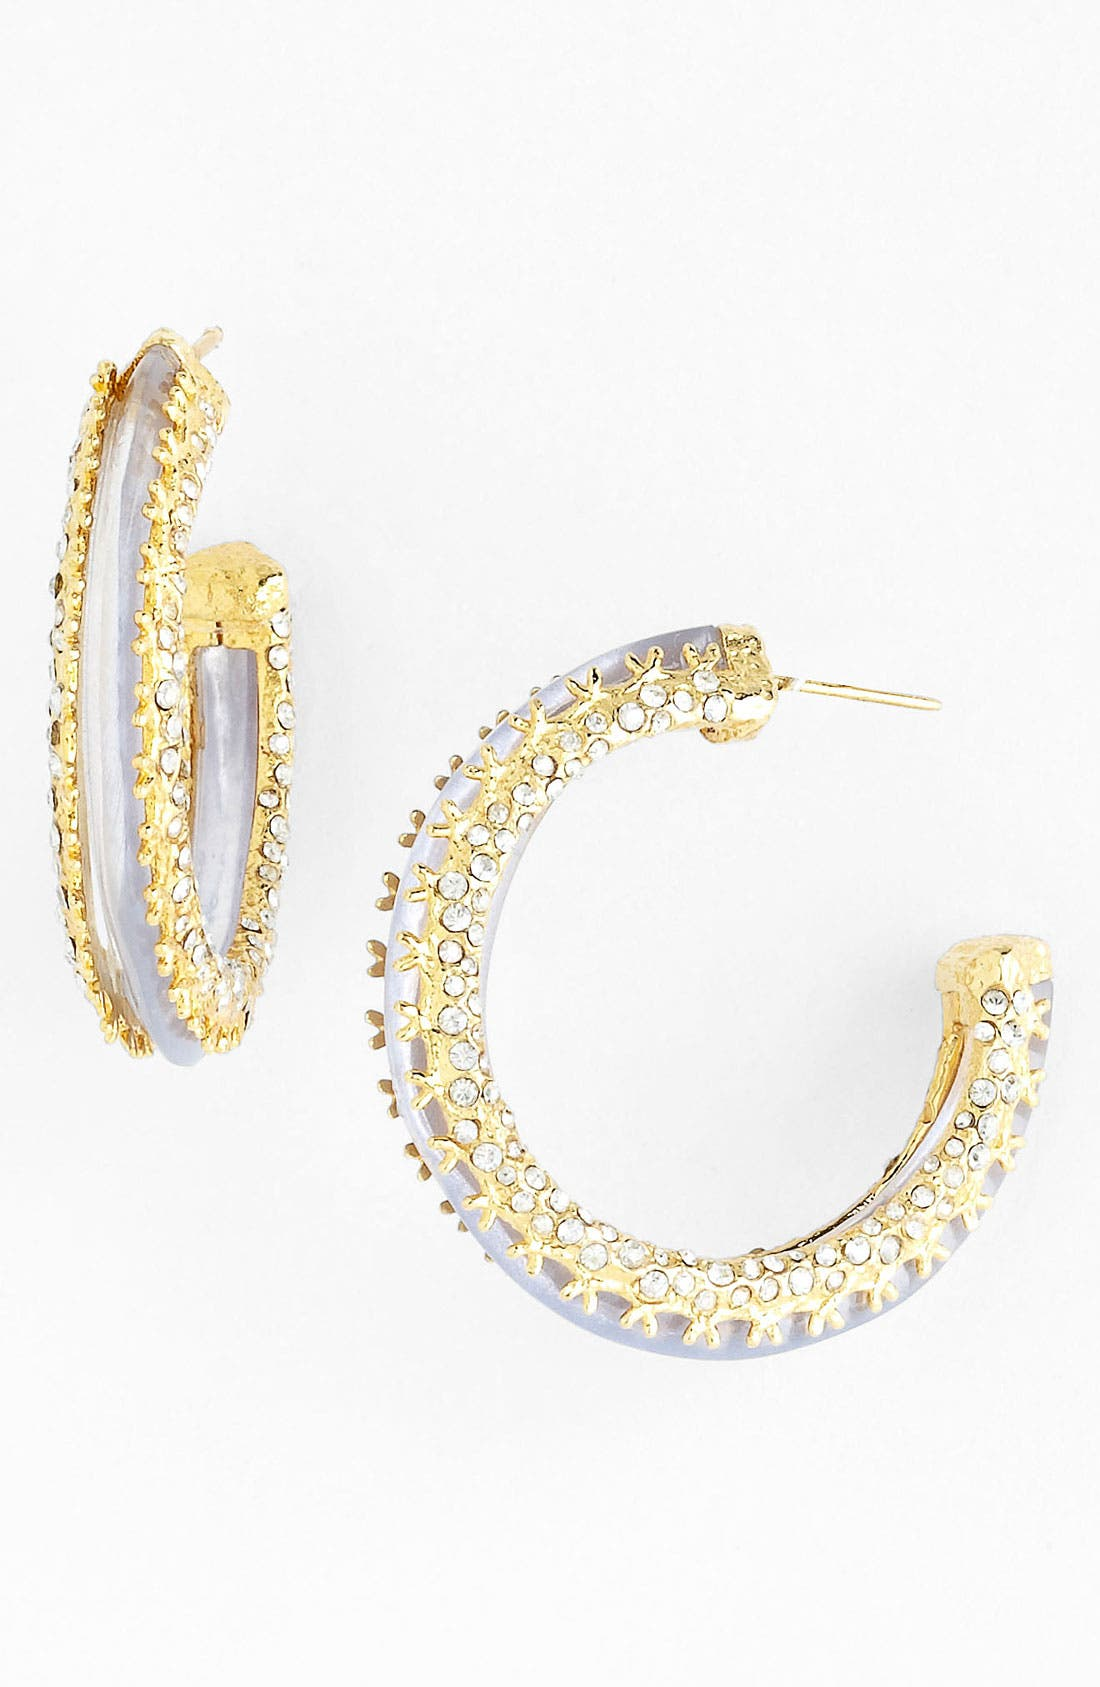 Main Image - Alexis Bittar 'Elements - Siyabona' Hoop Earrings